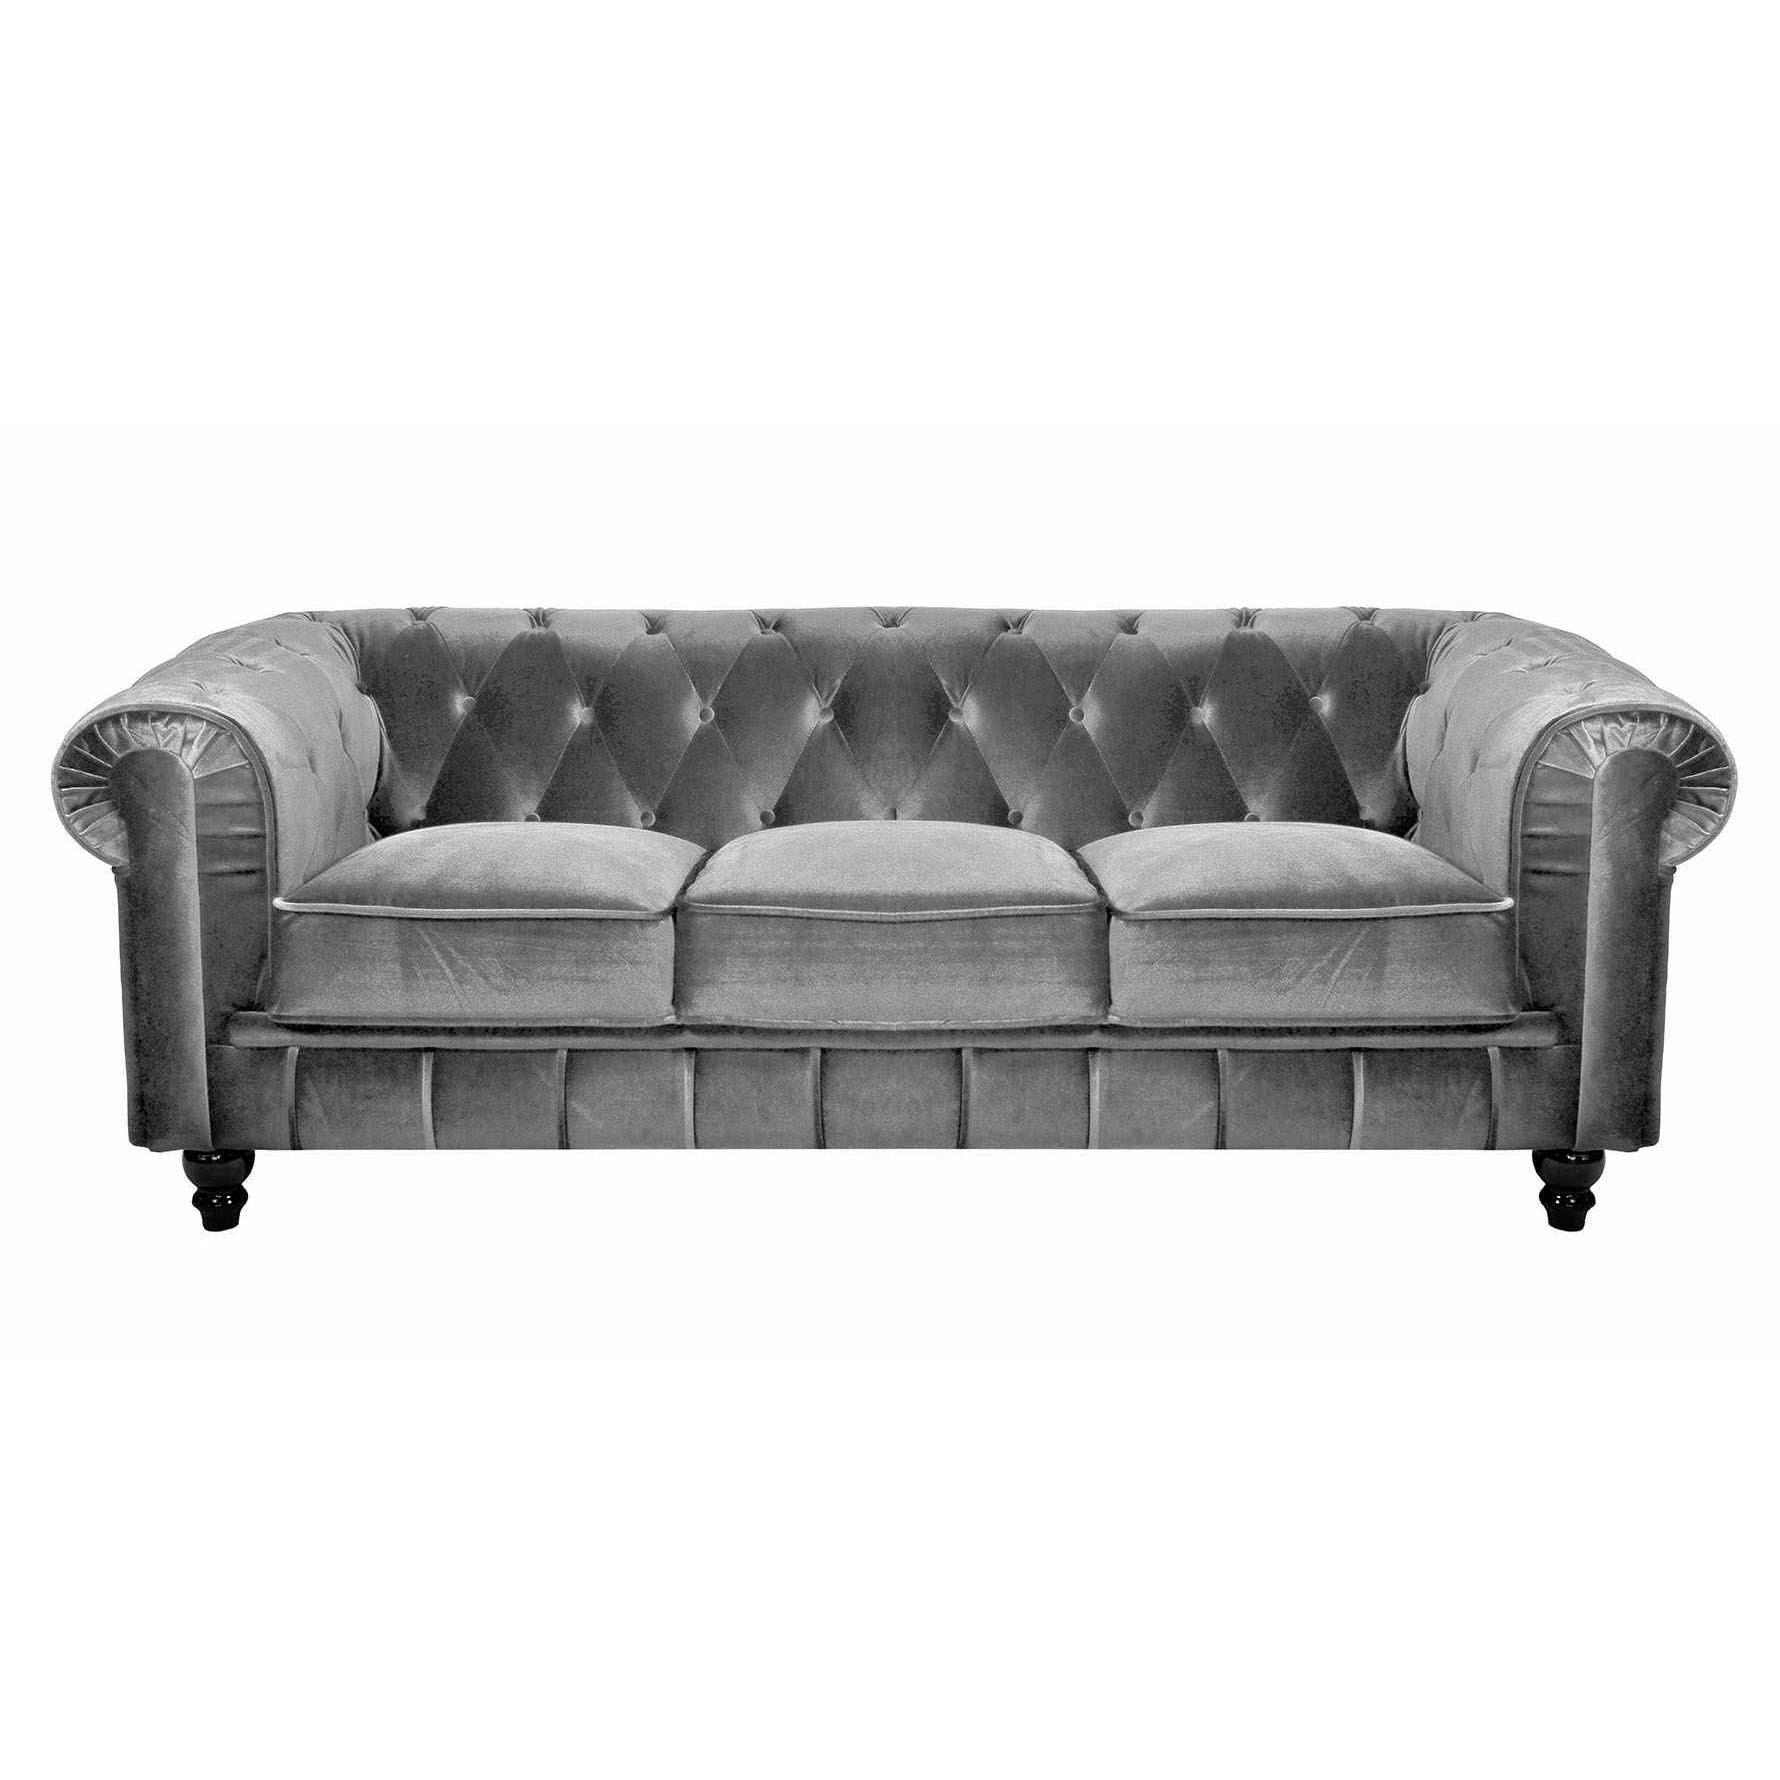 deco in paris canape 3 places velours gris chesterfield. Black Bedroom Furniture Sets. Home Design Ideas